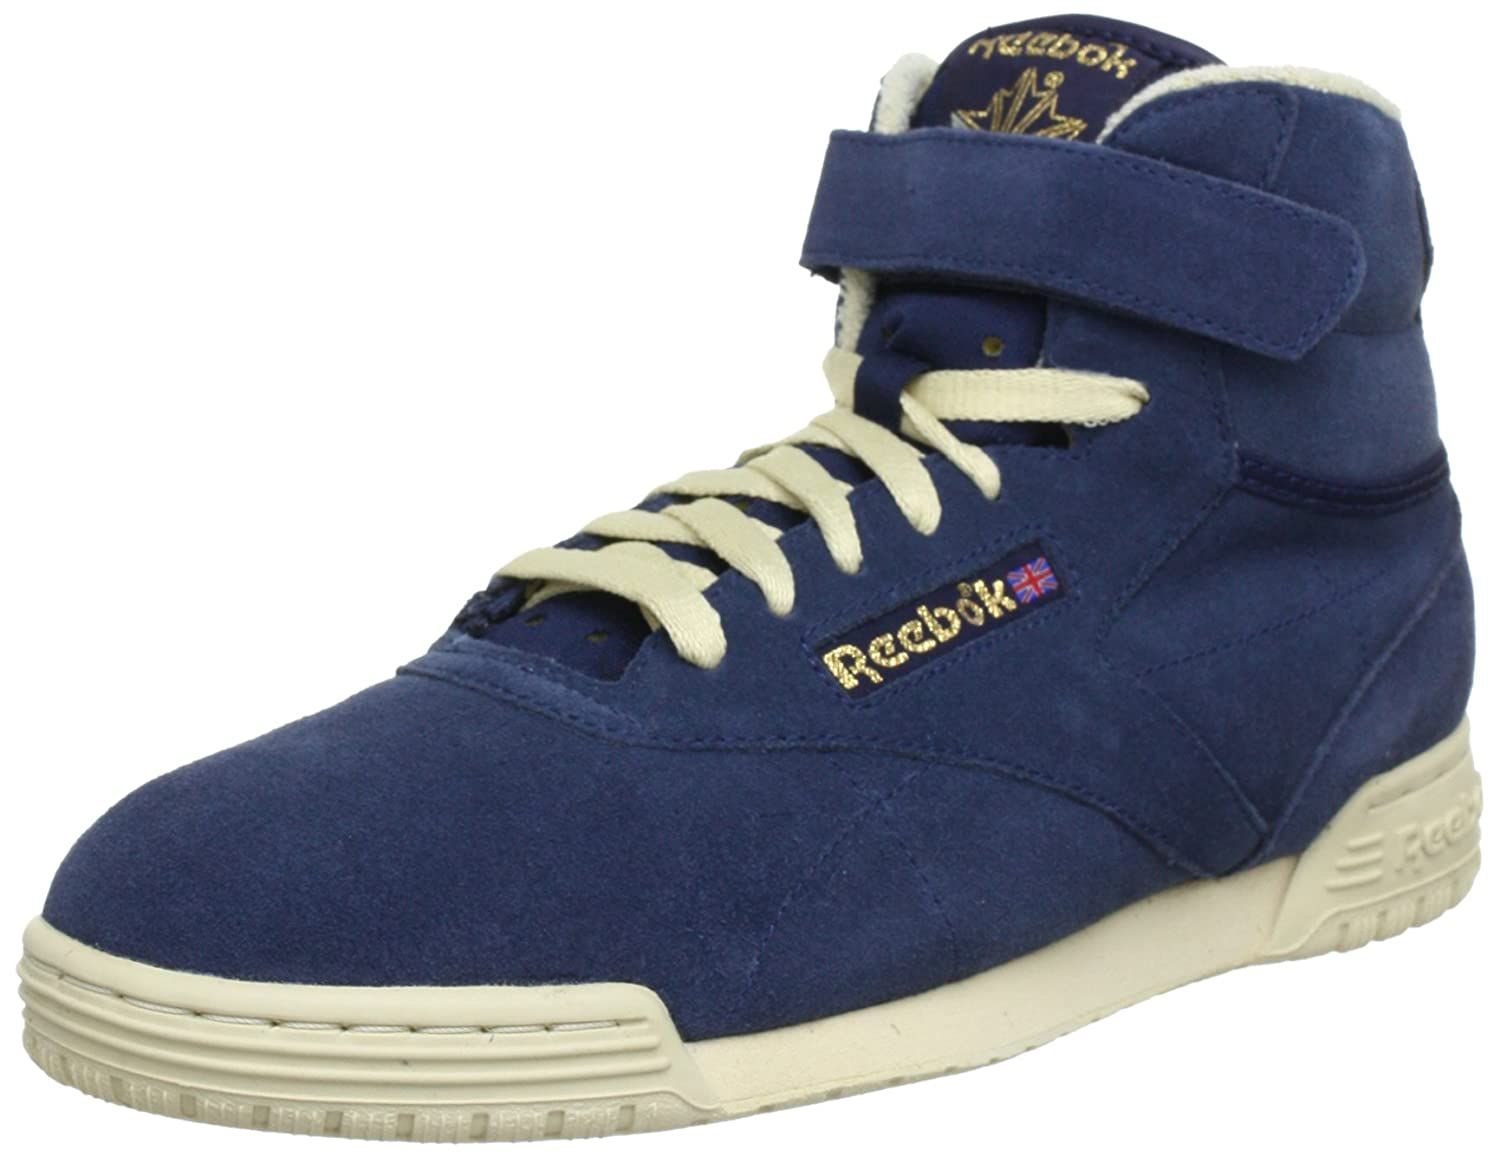 Reebok EX-O-FIT CLEAN HI VINTAGE V45039 Herren Sneaker  425 EU|Blau (Athletic Navy/Bone/ Reebok Brass)